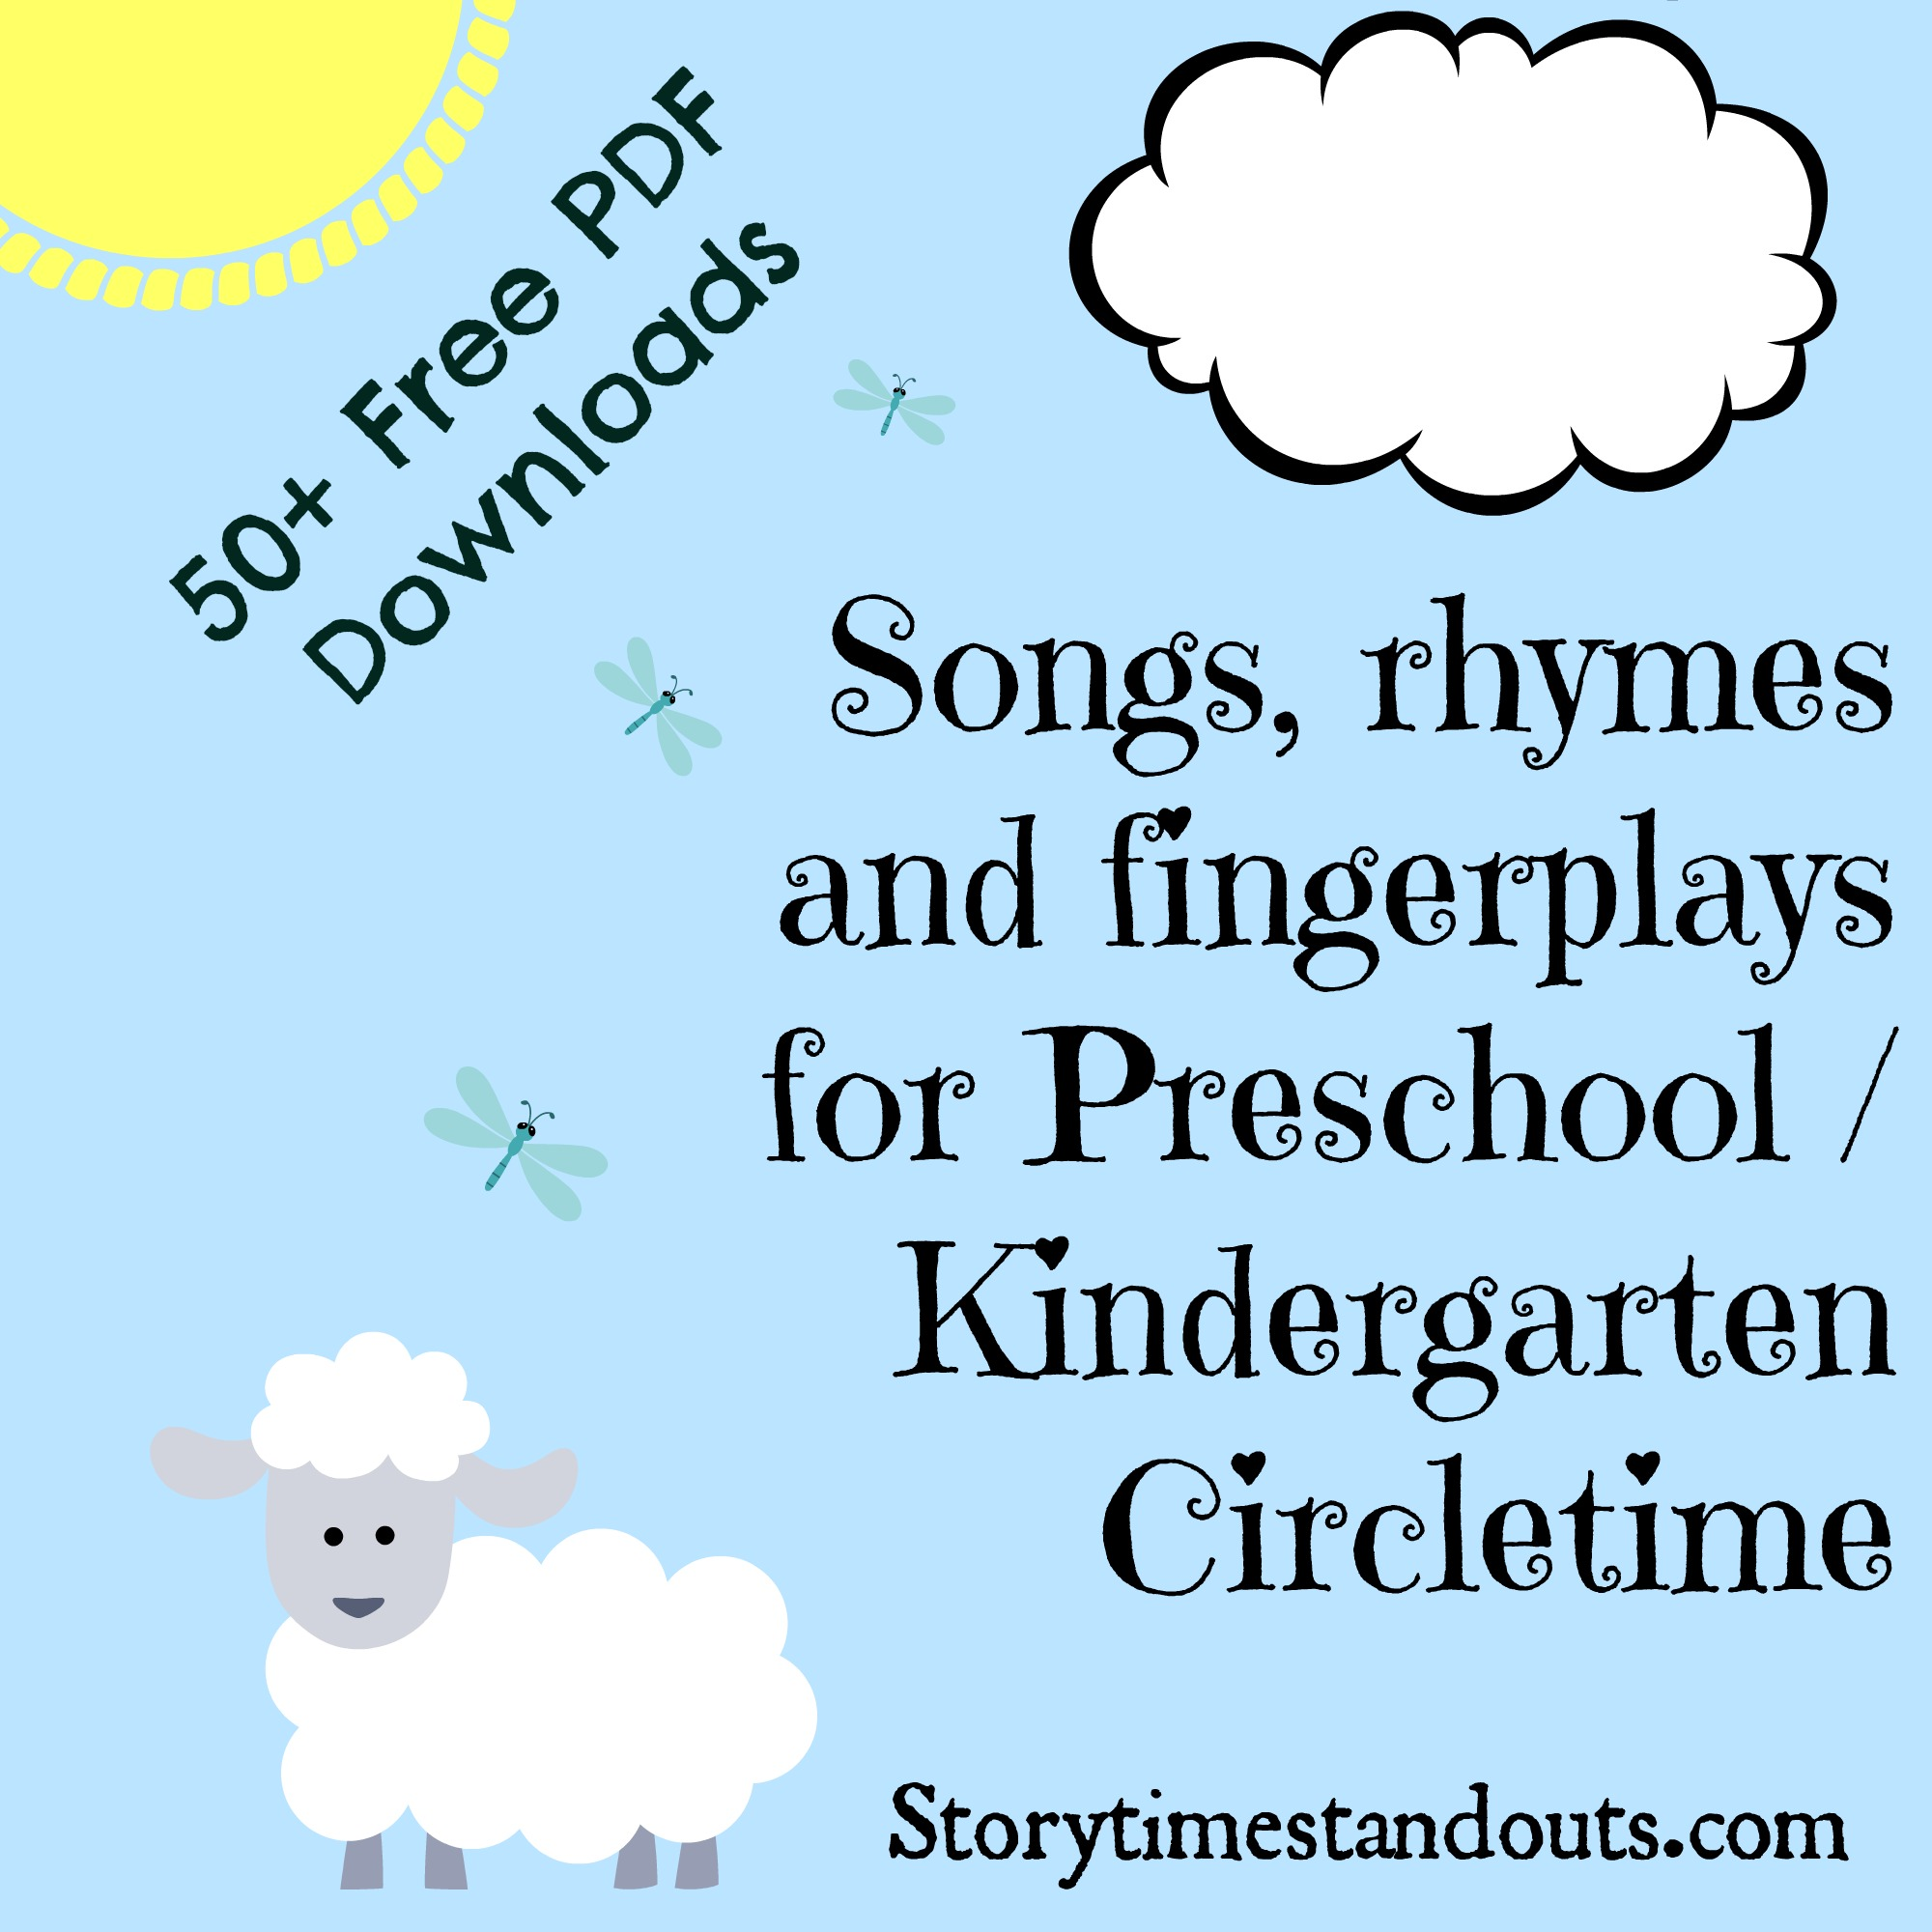 6 Free Printable Nursery Rhymes To Share With Young Children